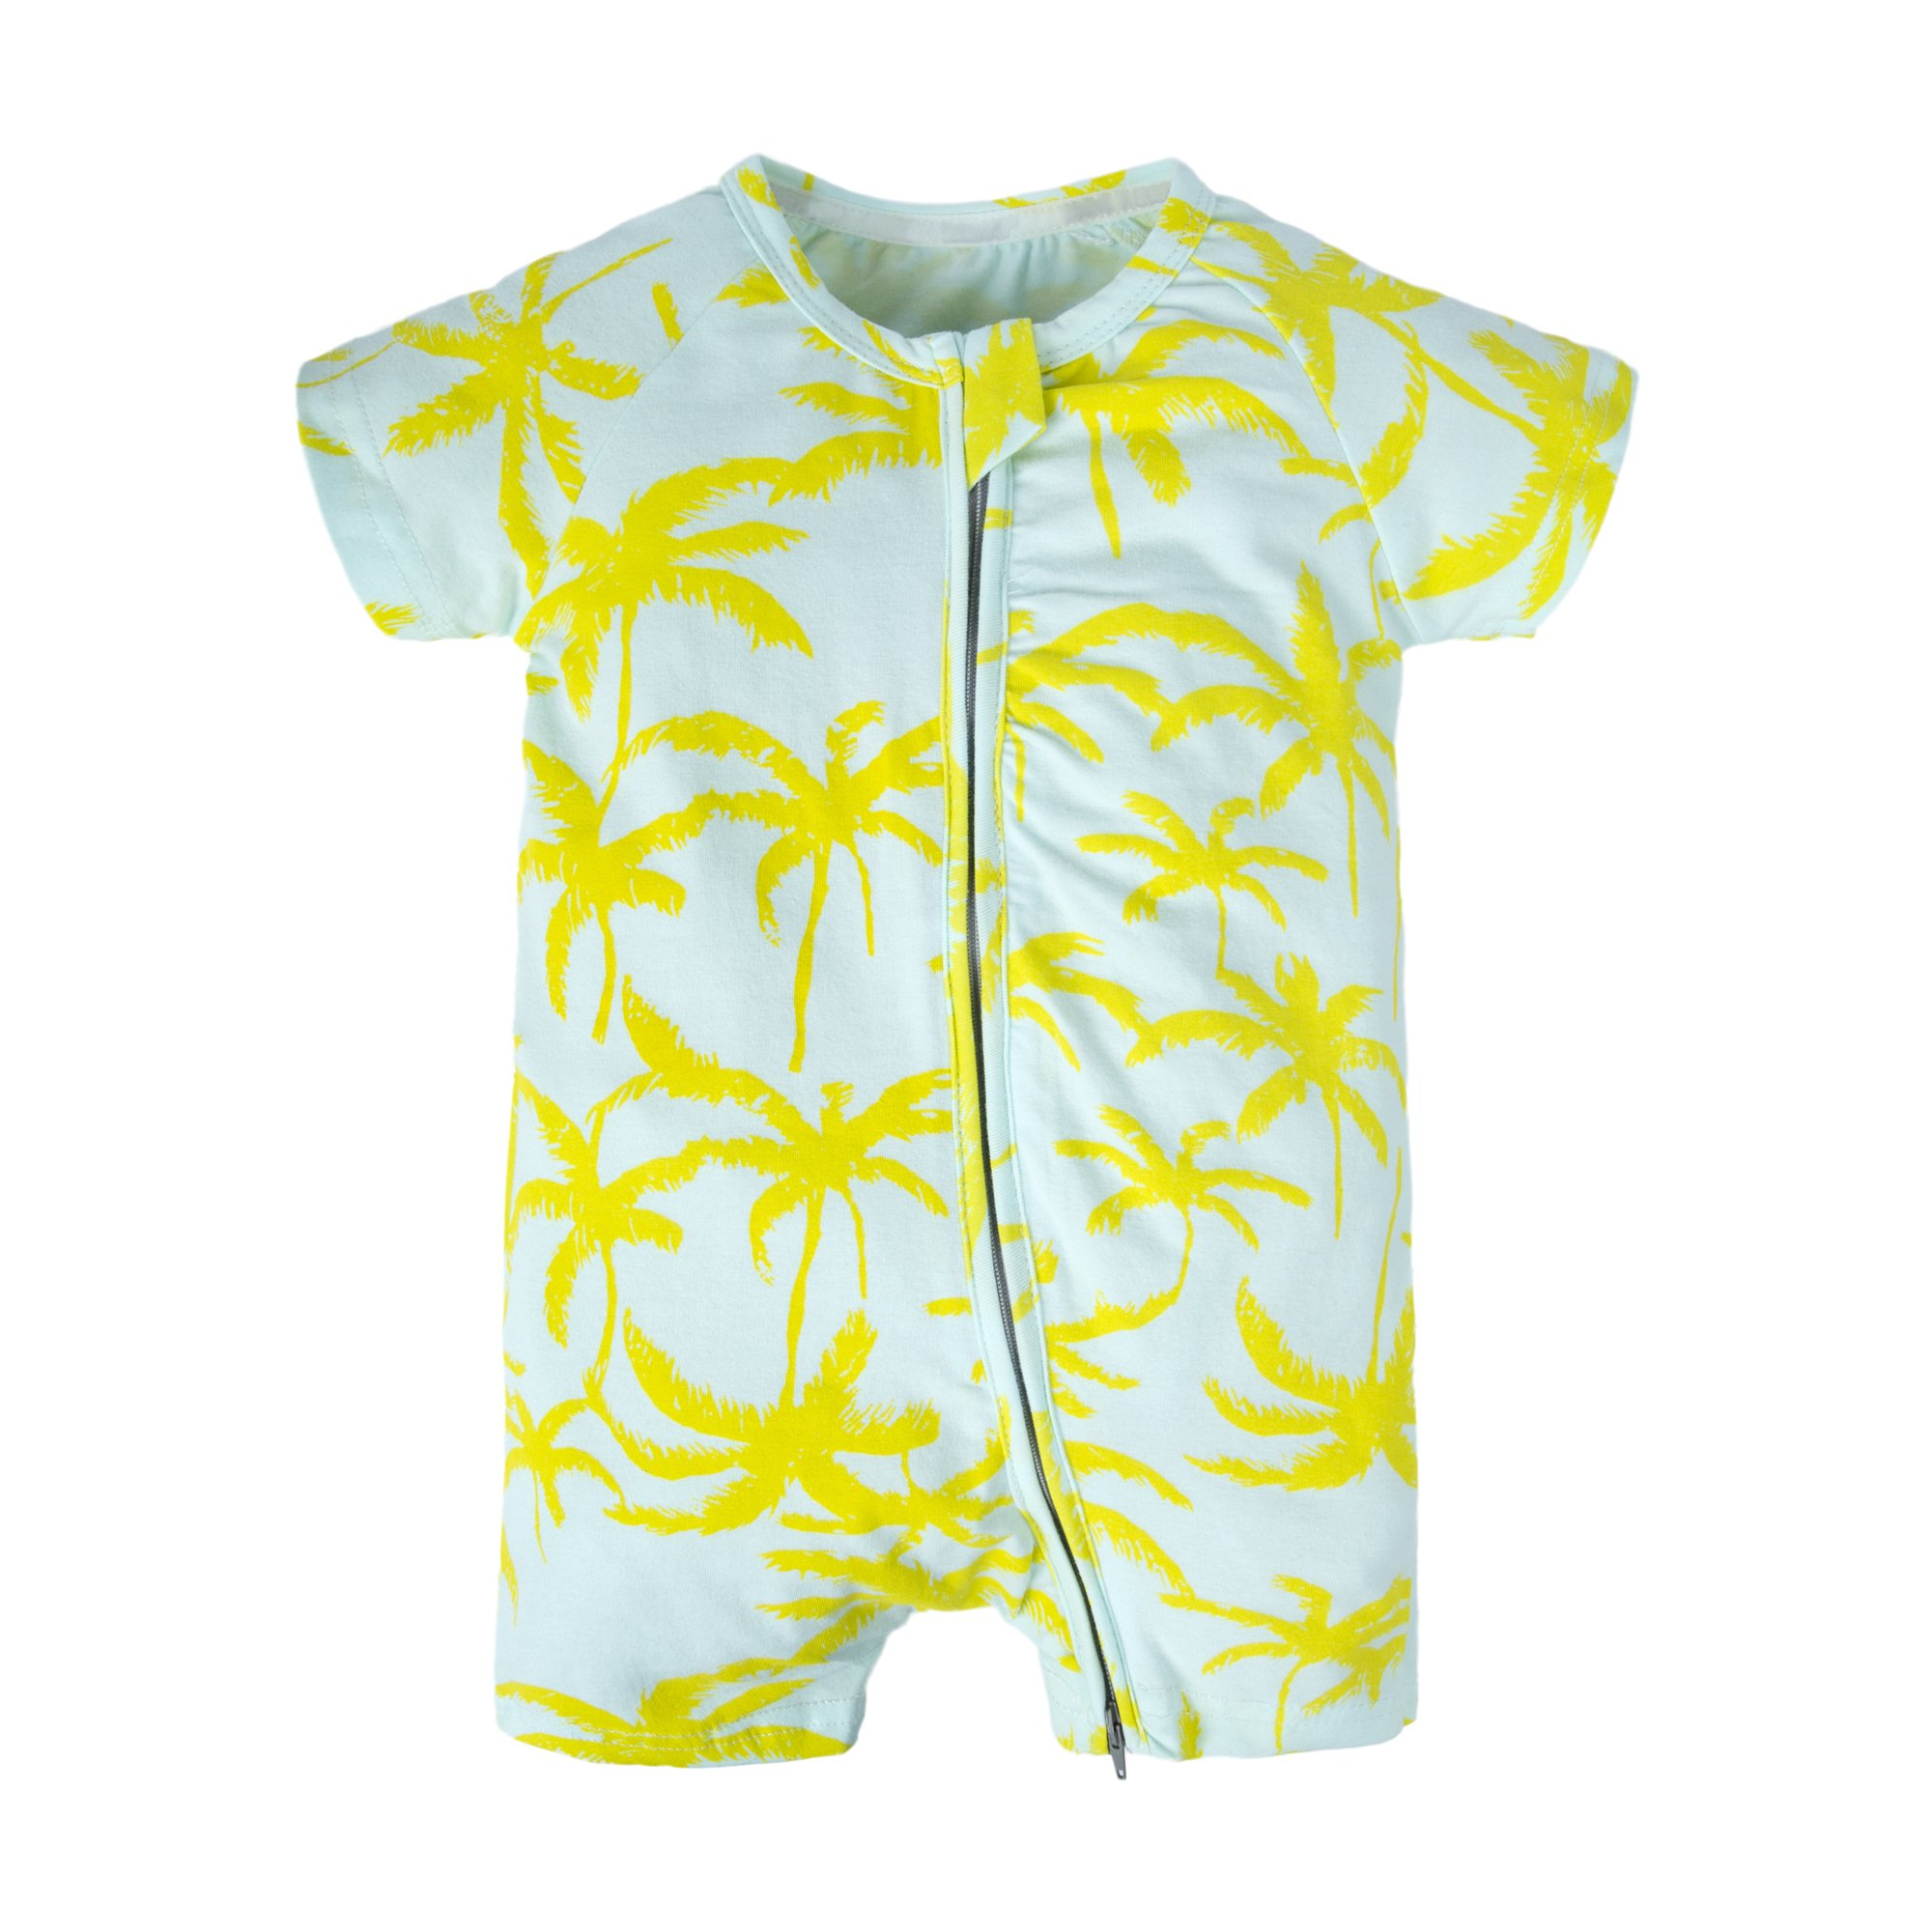 BIG ELEPHANT Baby Girls'1 Piece Summer Short Sleeve Pajama Graphic Zipper Romper Style I U14-100 18-24 Months